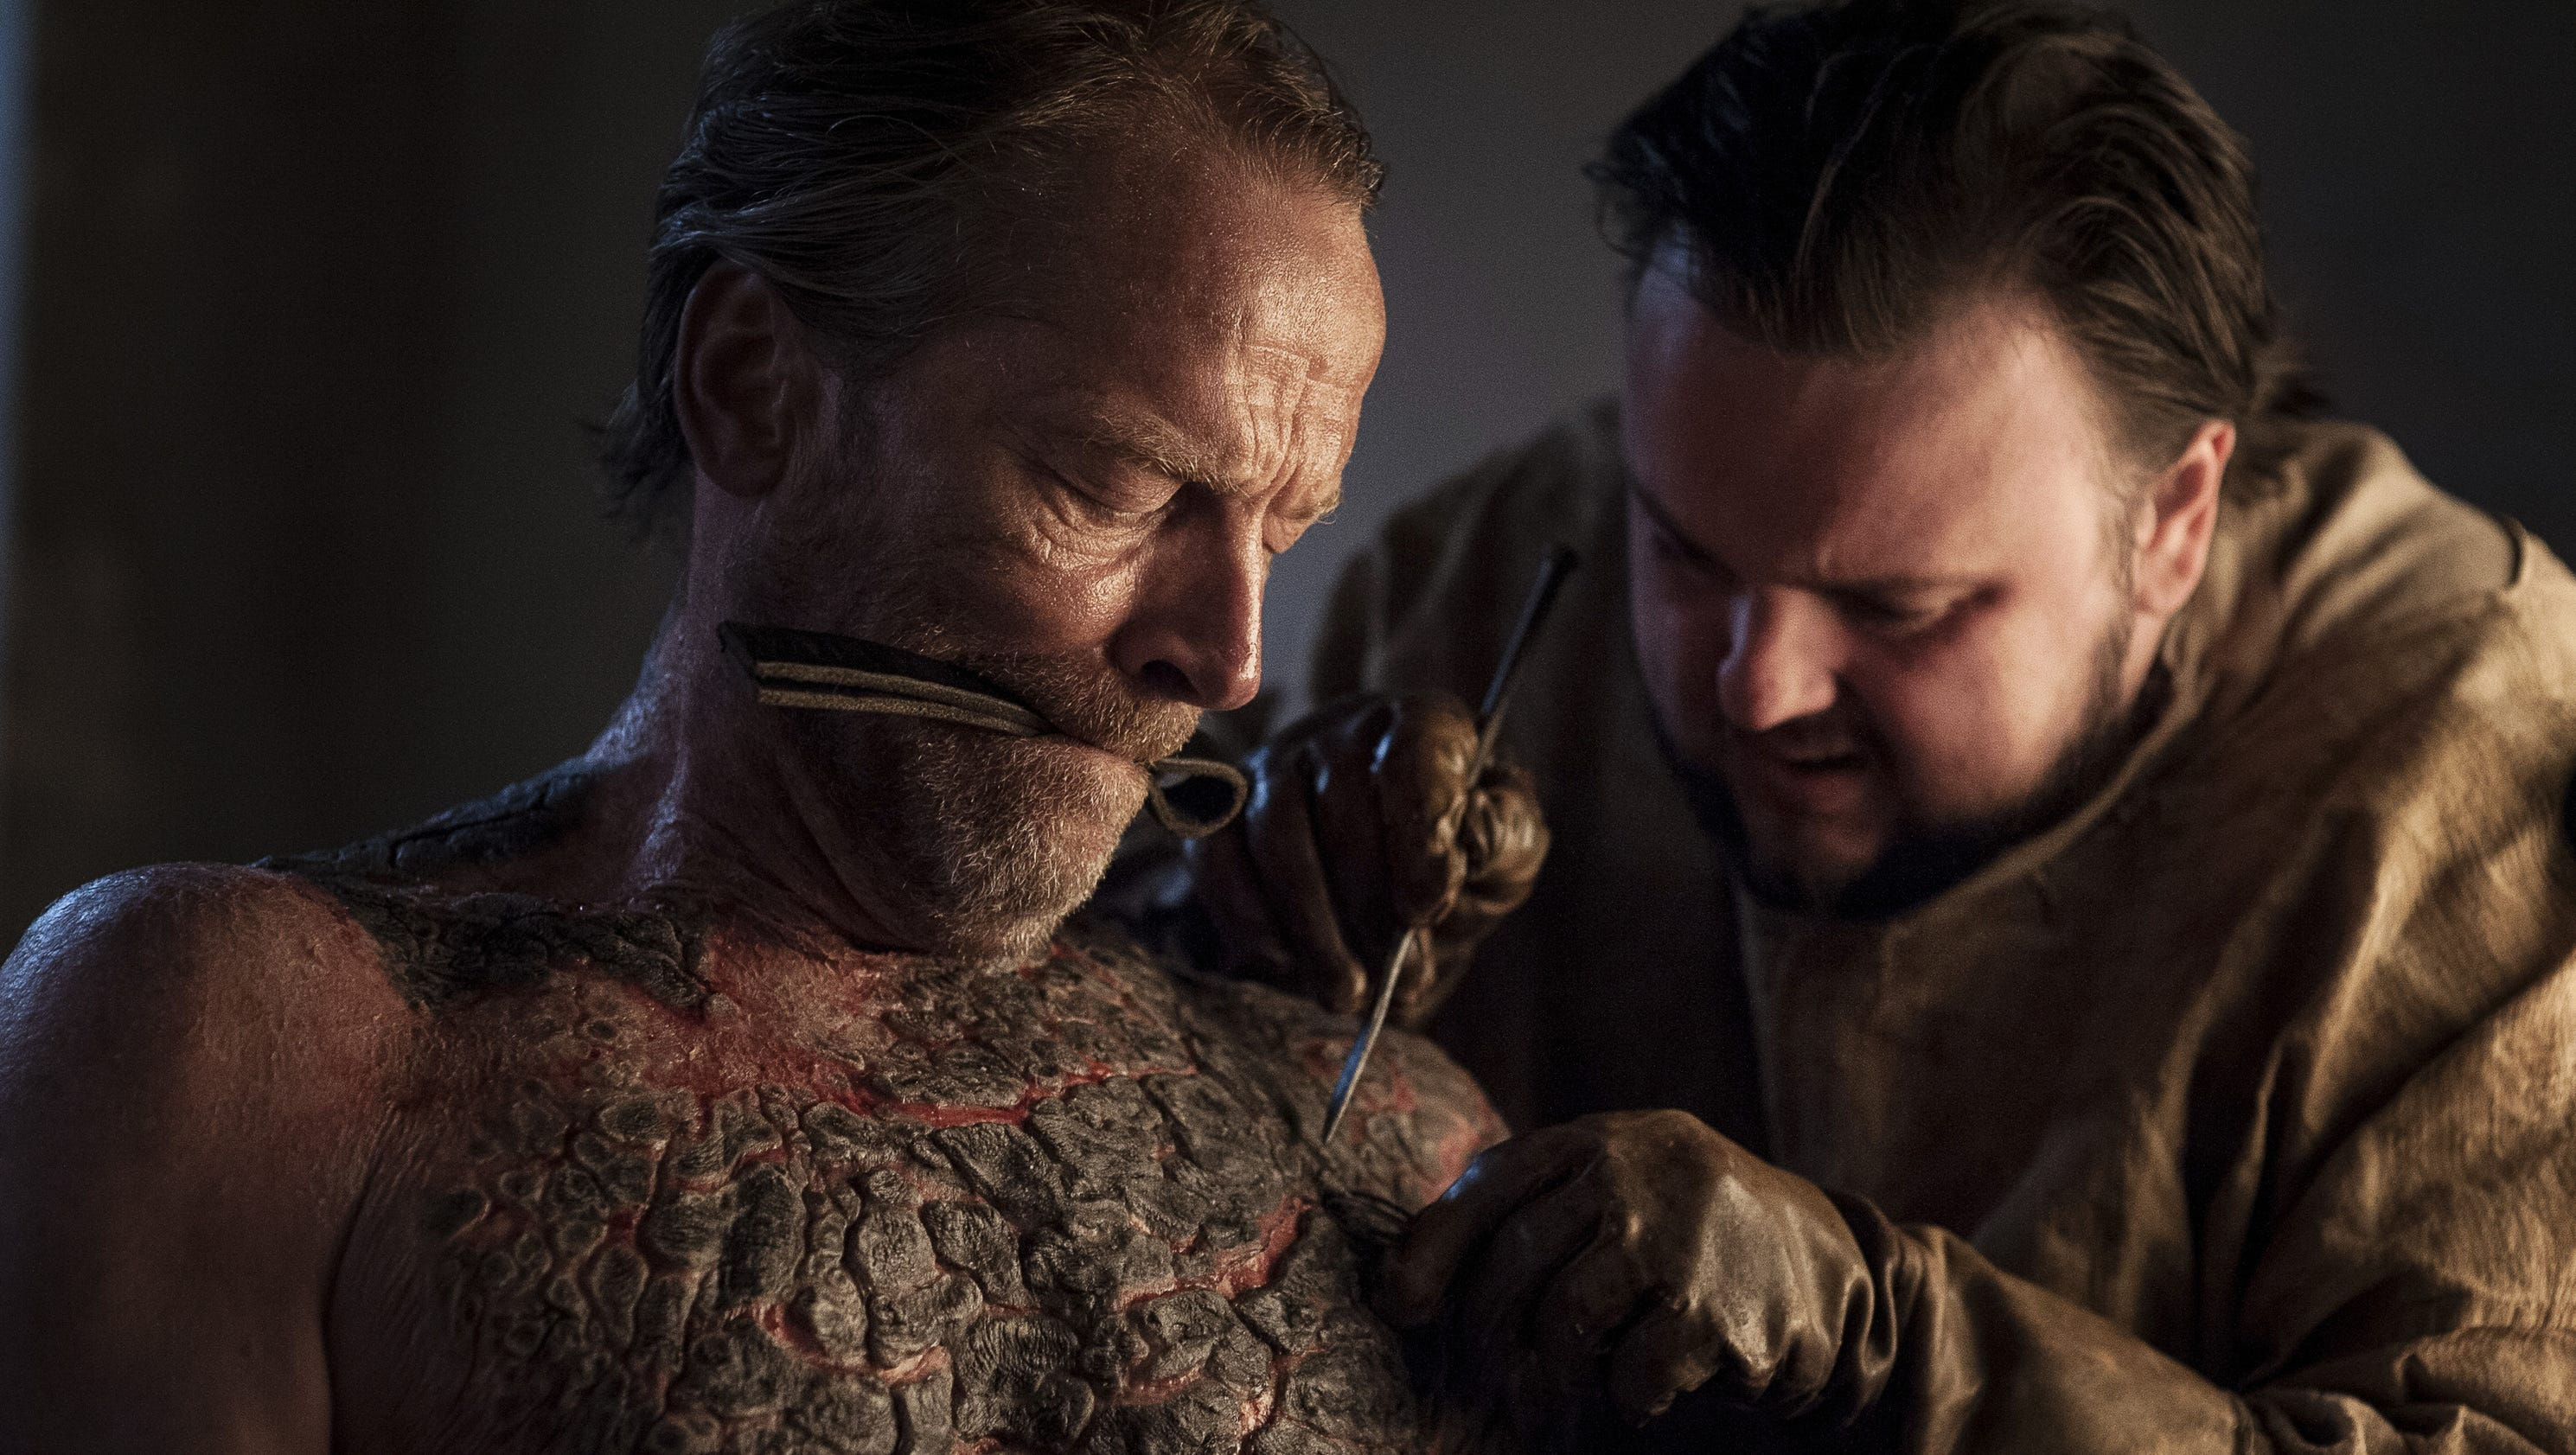 98 game of thrones - photo #4